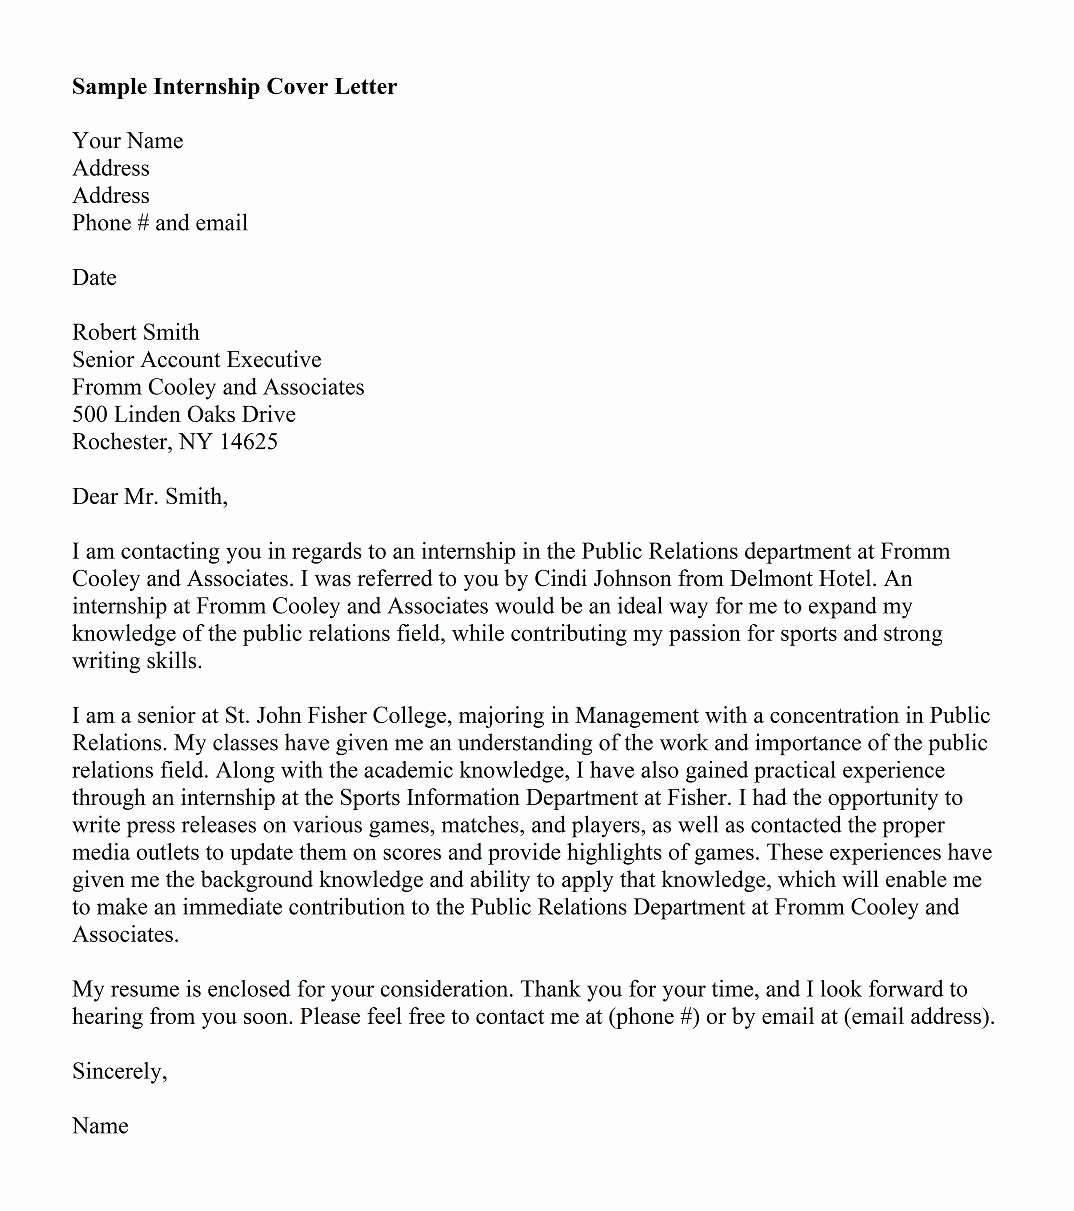 Sample Professional Cover Letter Elegant 5 Free Cover Letter Templates for Resume and 10 Best